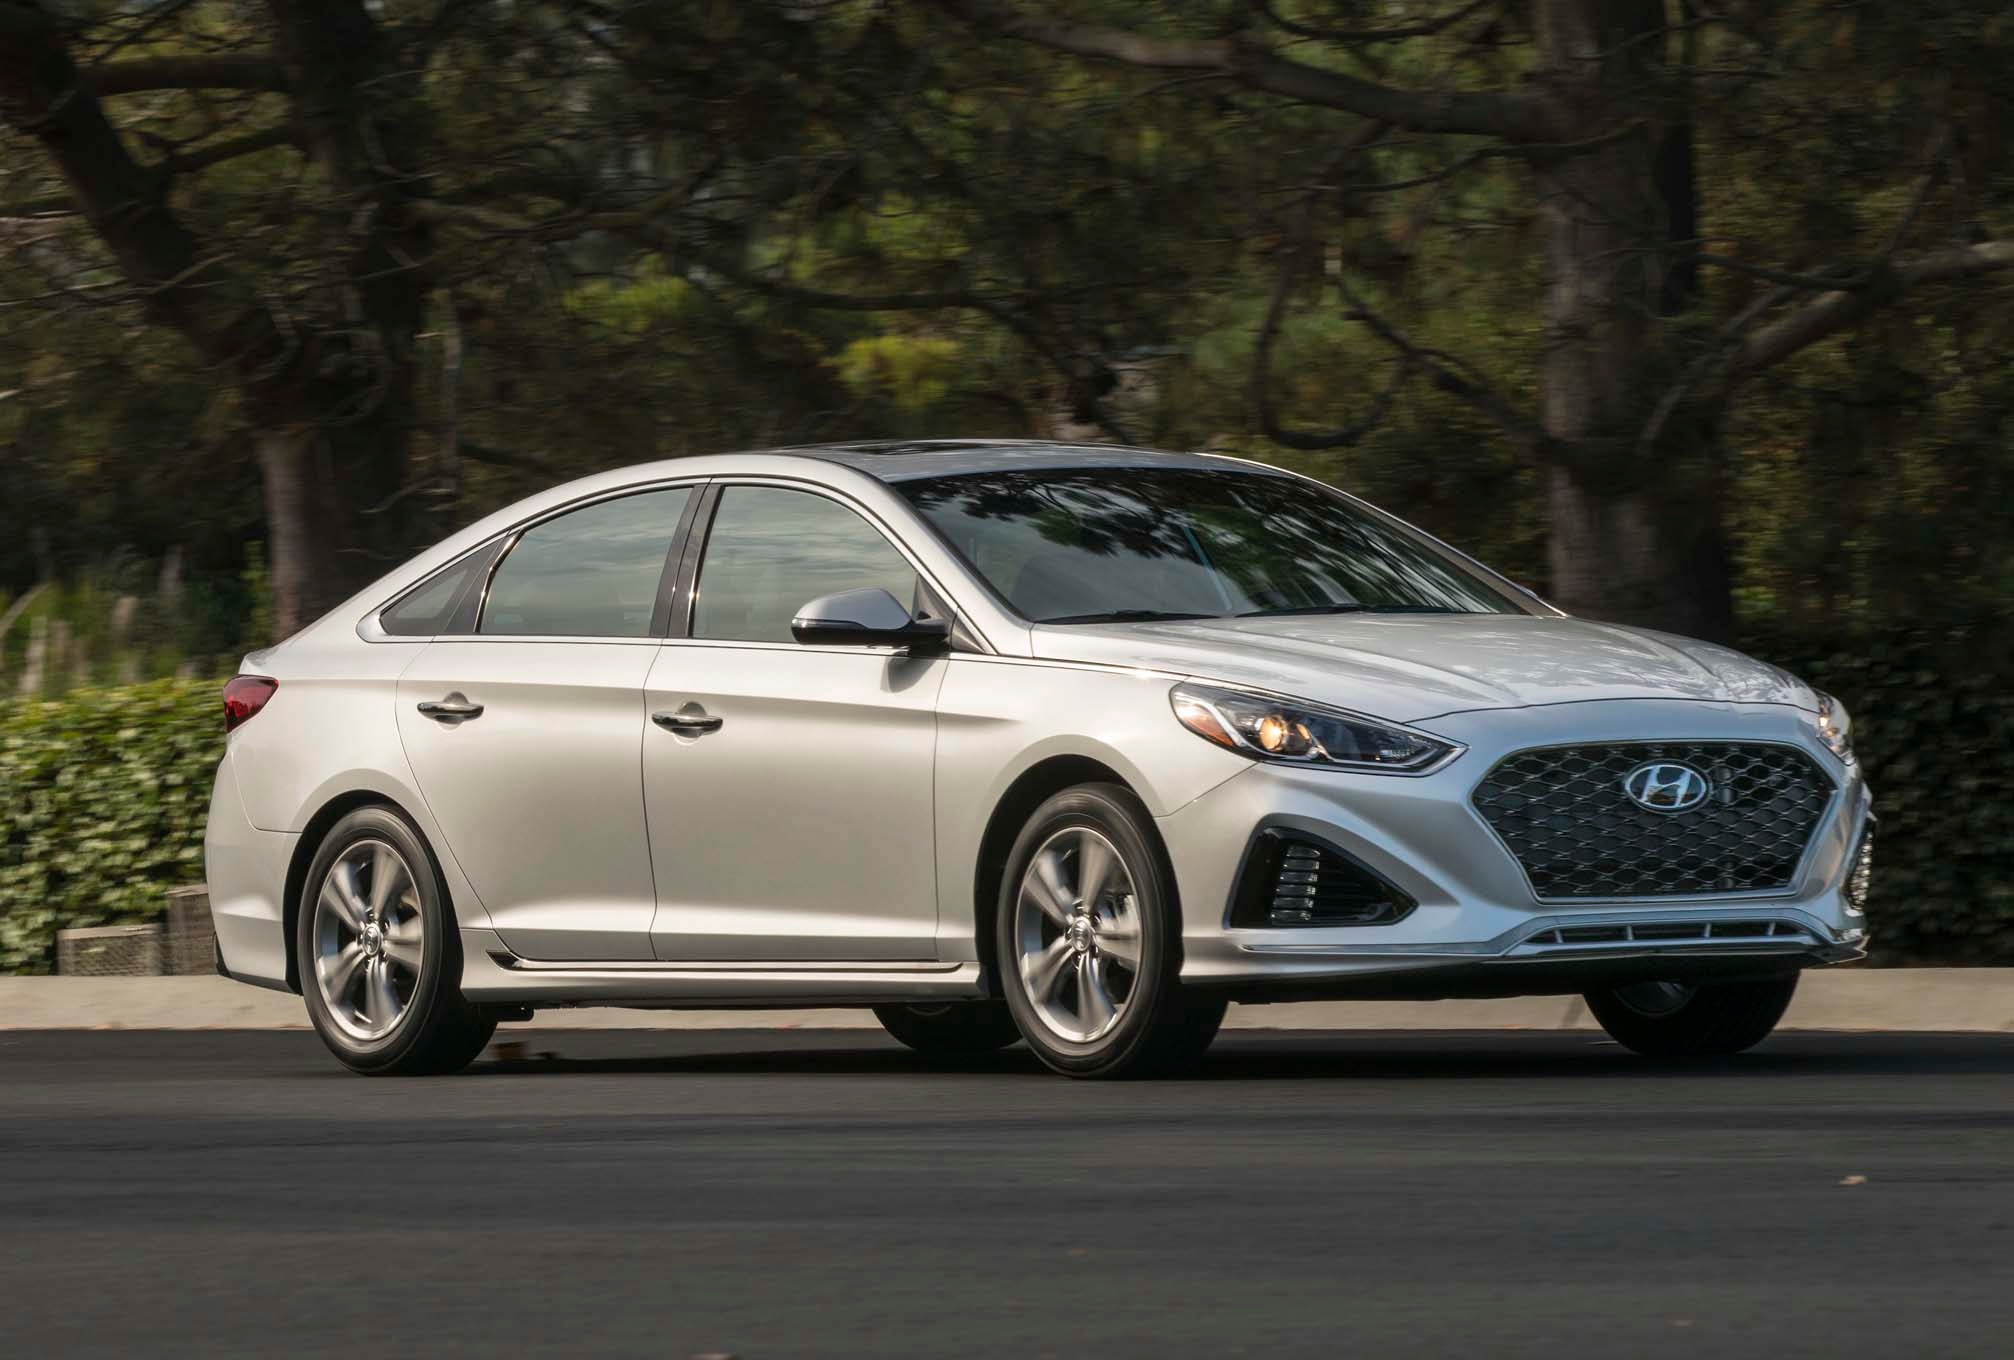 Hyundai Sonata Mpg U003eu003e 2018 Hyundai Sonata First Drive Review | Automobile  Magazine